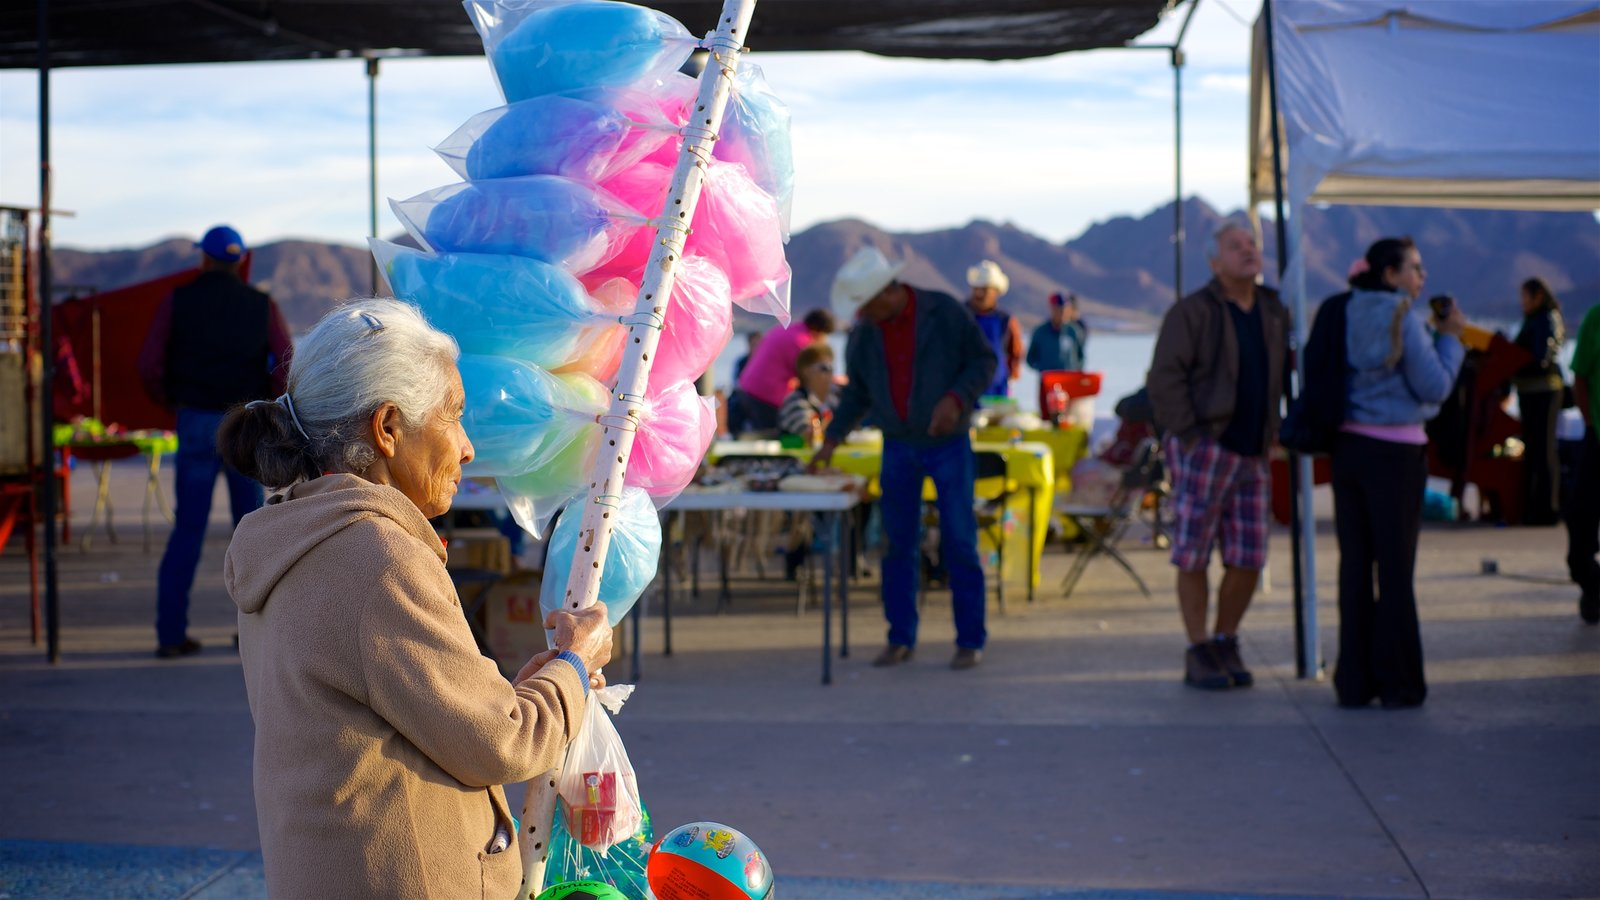 Guaymas featuring street scenes as well as an individual femail